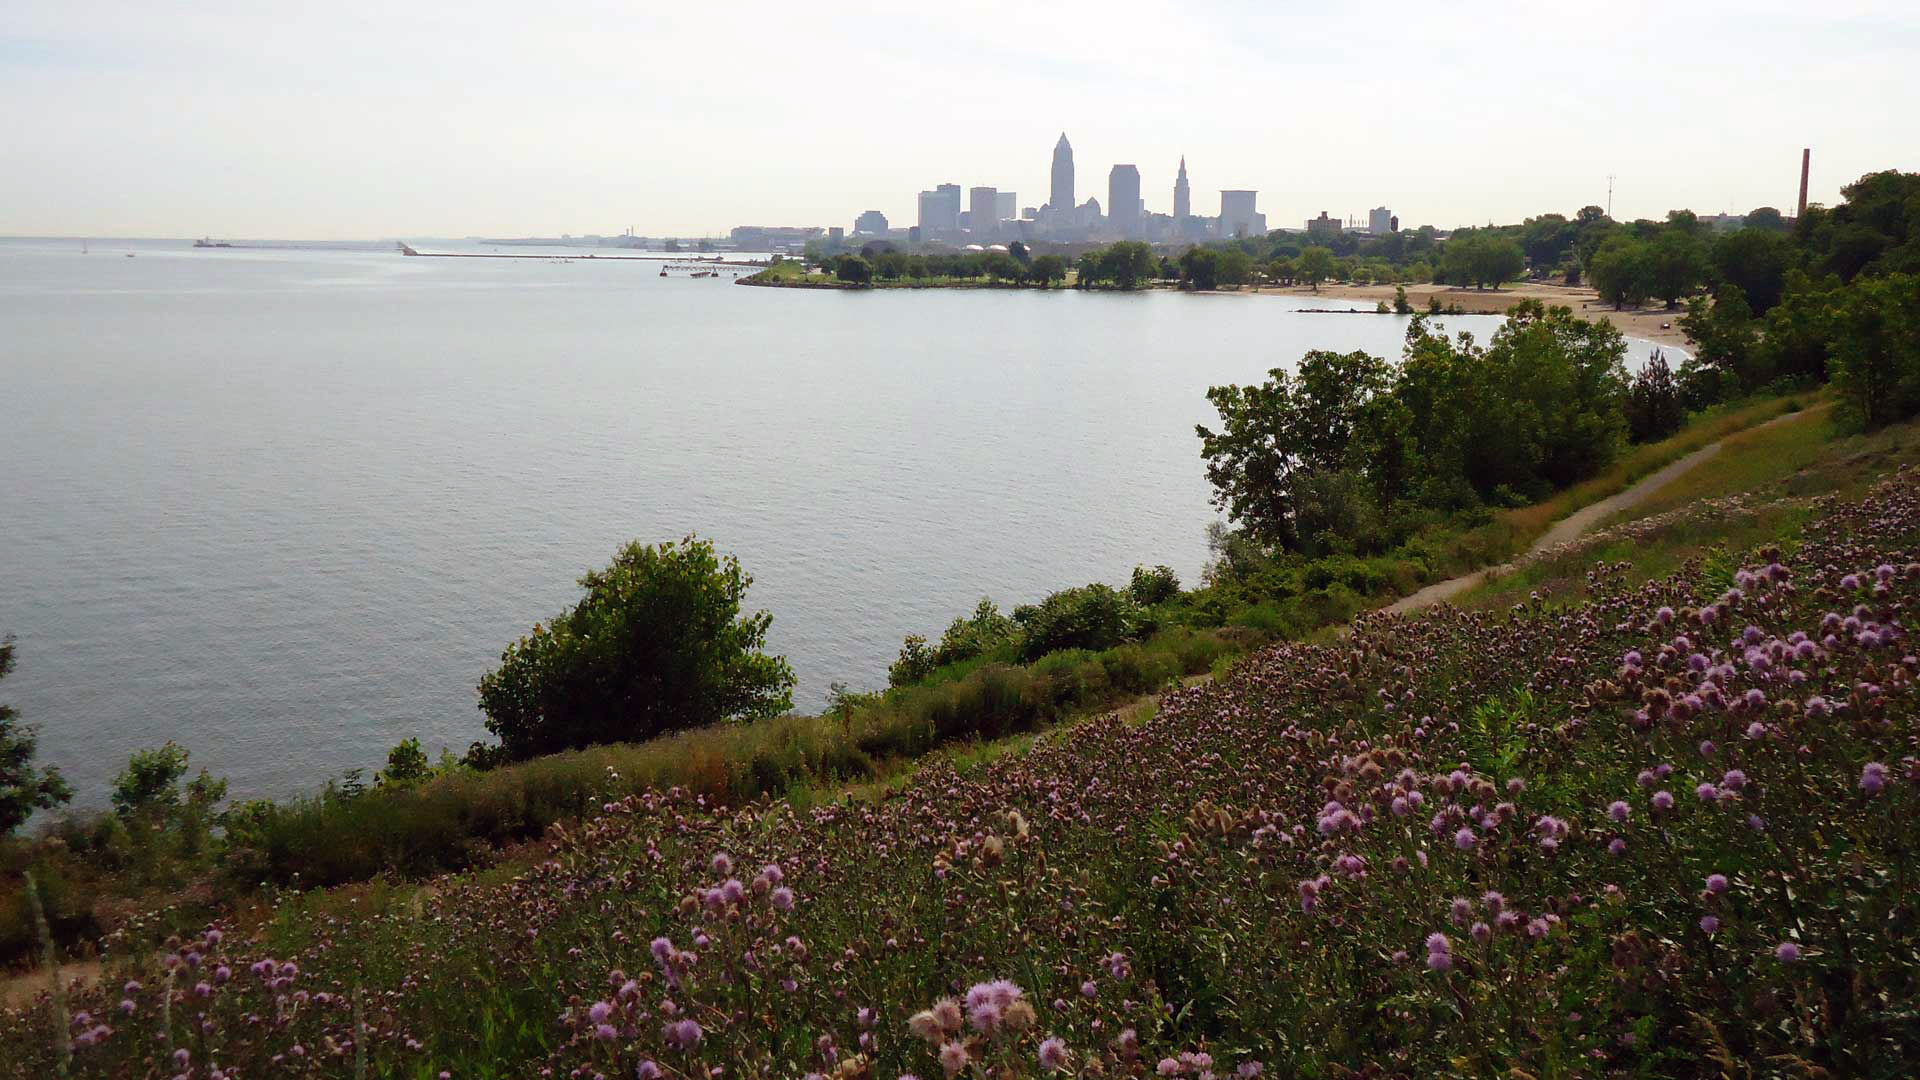 LAKEFRONT PARKS, WEST CREEK RESERVATION AND LEVY PASSAGE TOP ACHIEVEMENT LIST FOR CLEVELAND METROPARKS IN 2013